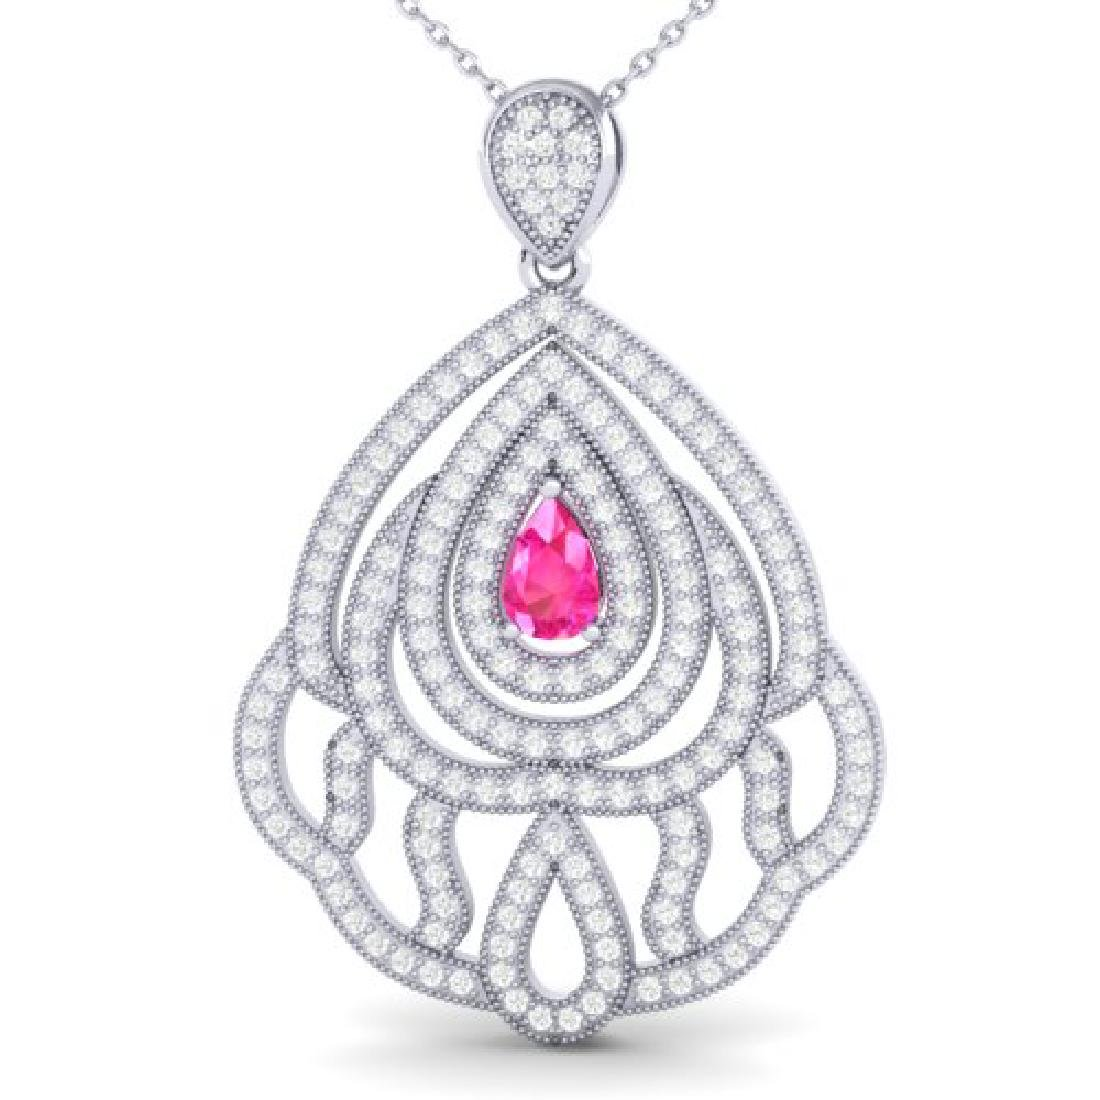 2 CTW Pink Sapphire & Micro Pave VS/SI Diamond Necklace